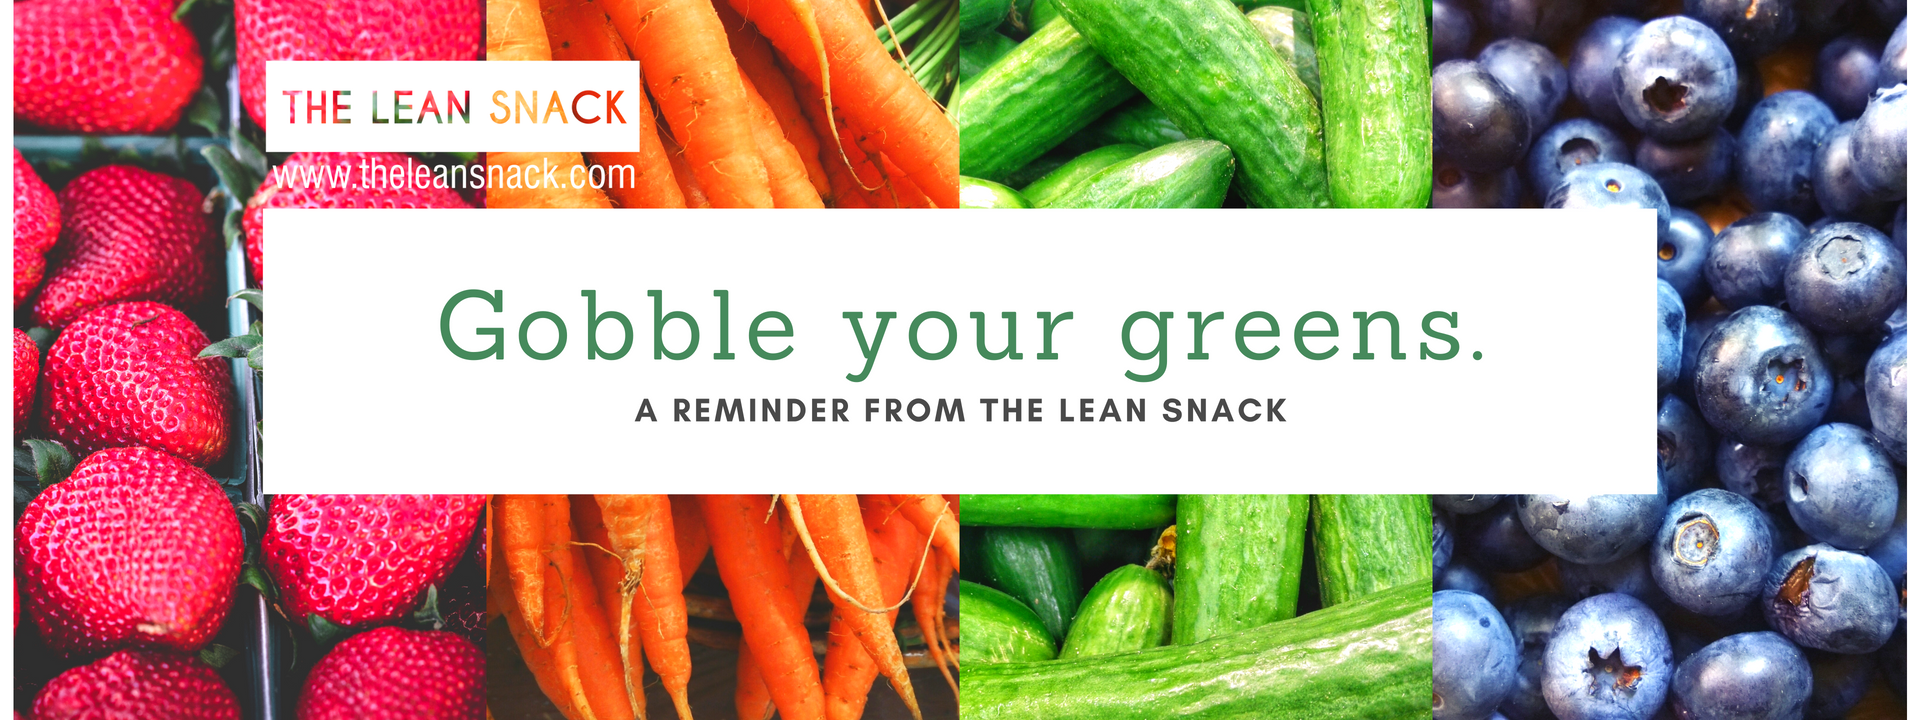 Eat your greens The Lean Snack